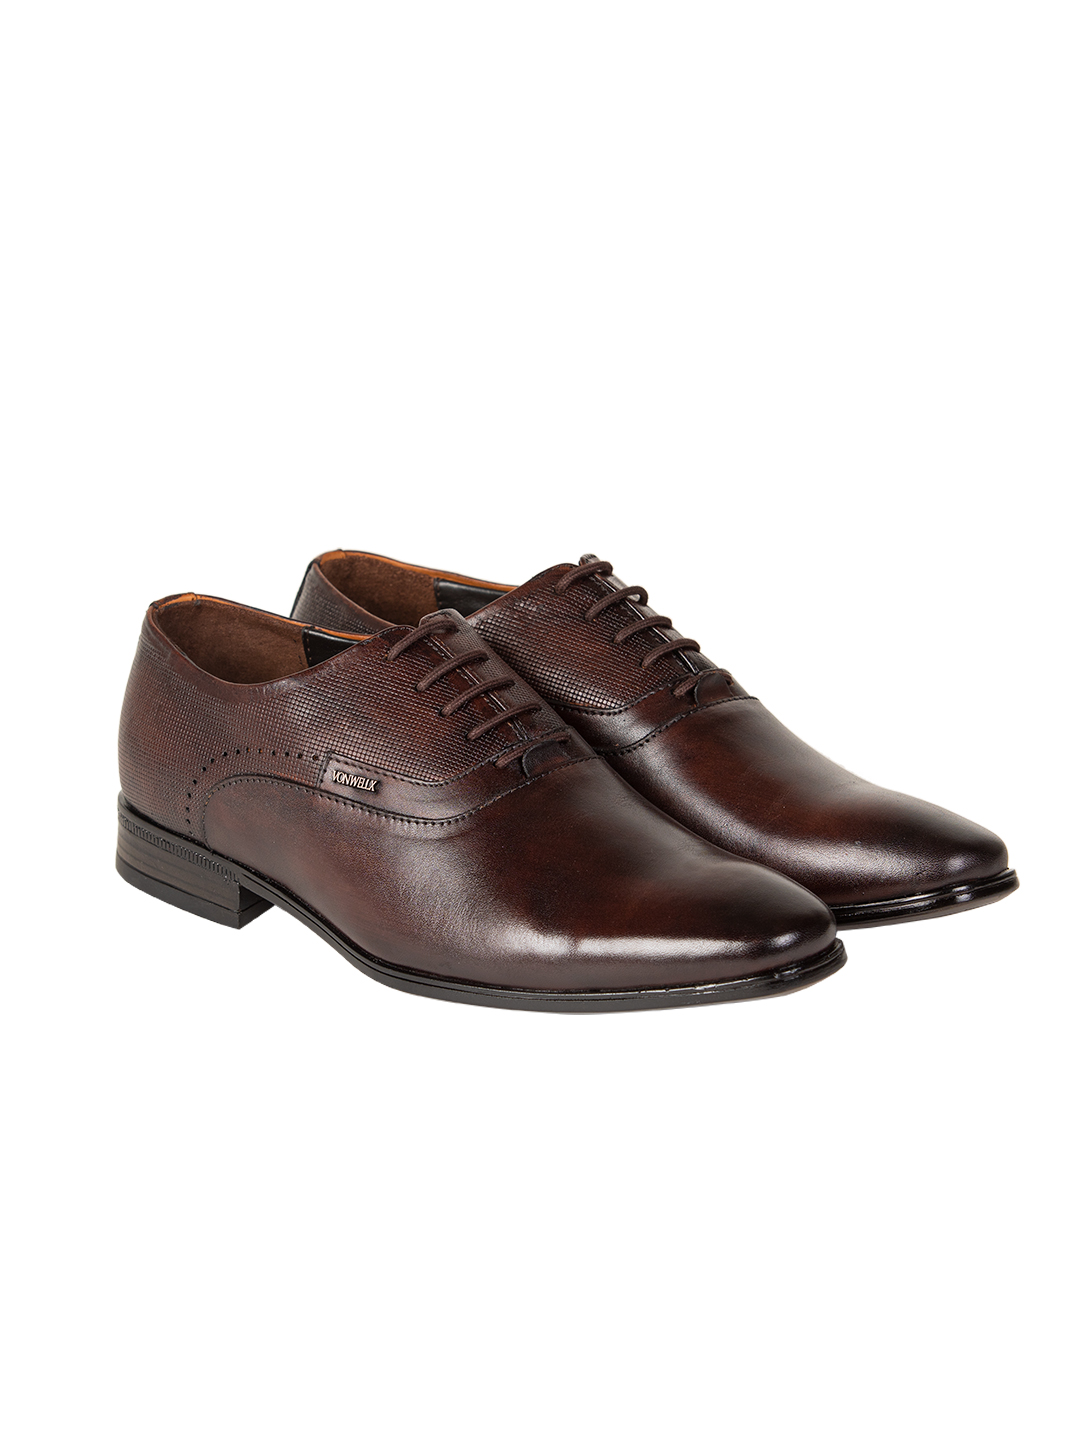 Buy Von Wellx Germany Comfort Brown  Kayden Shoes Online in Ahmedabad